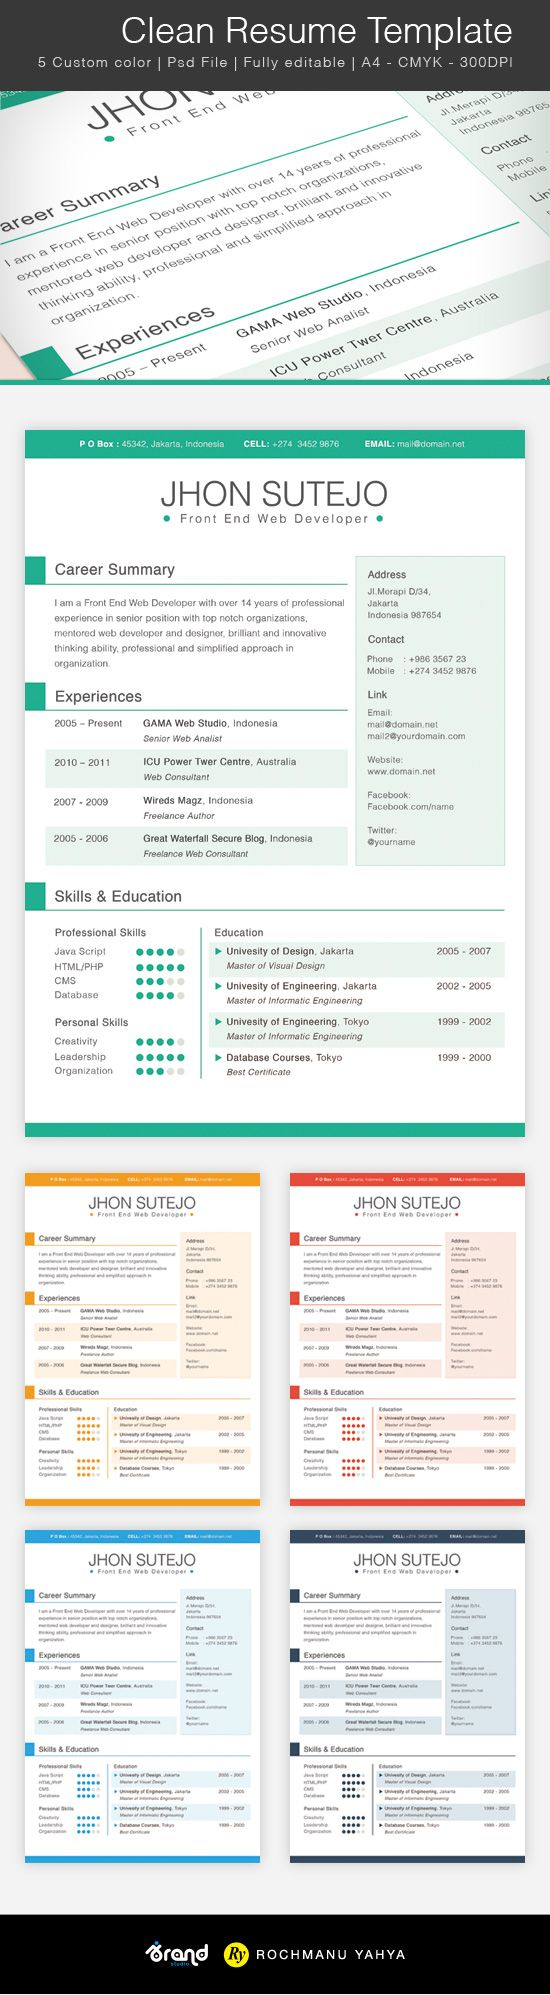 Our new freebie: Free Clean #Resume Template - 5 Colors